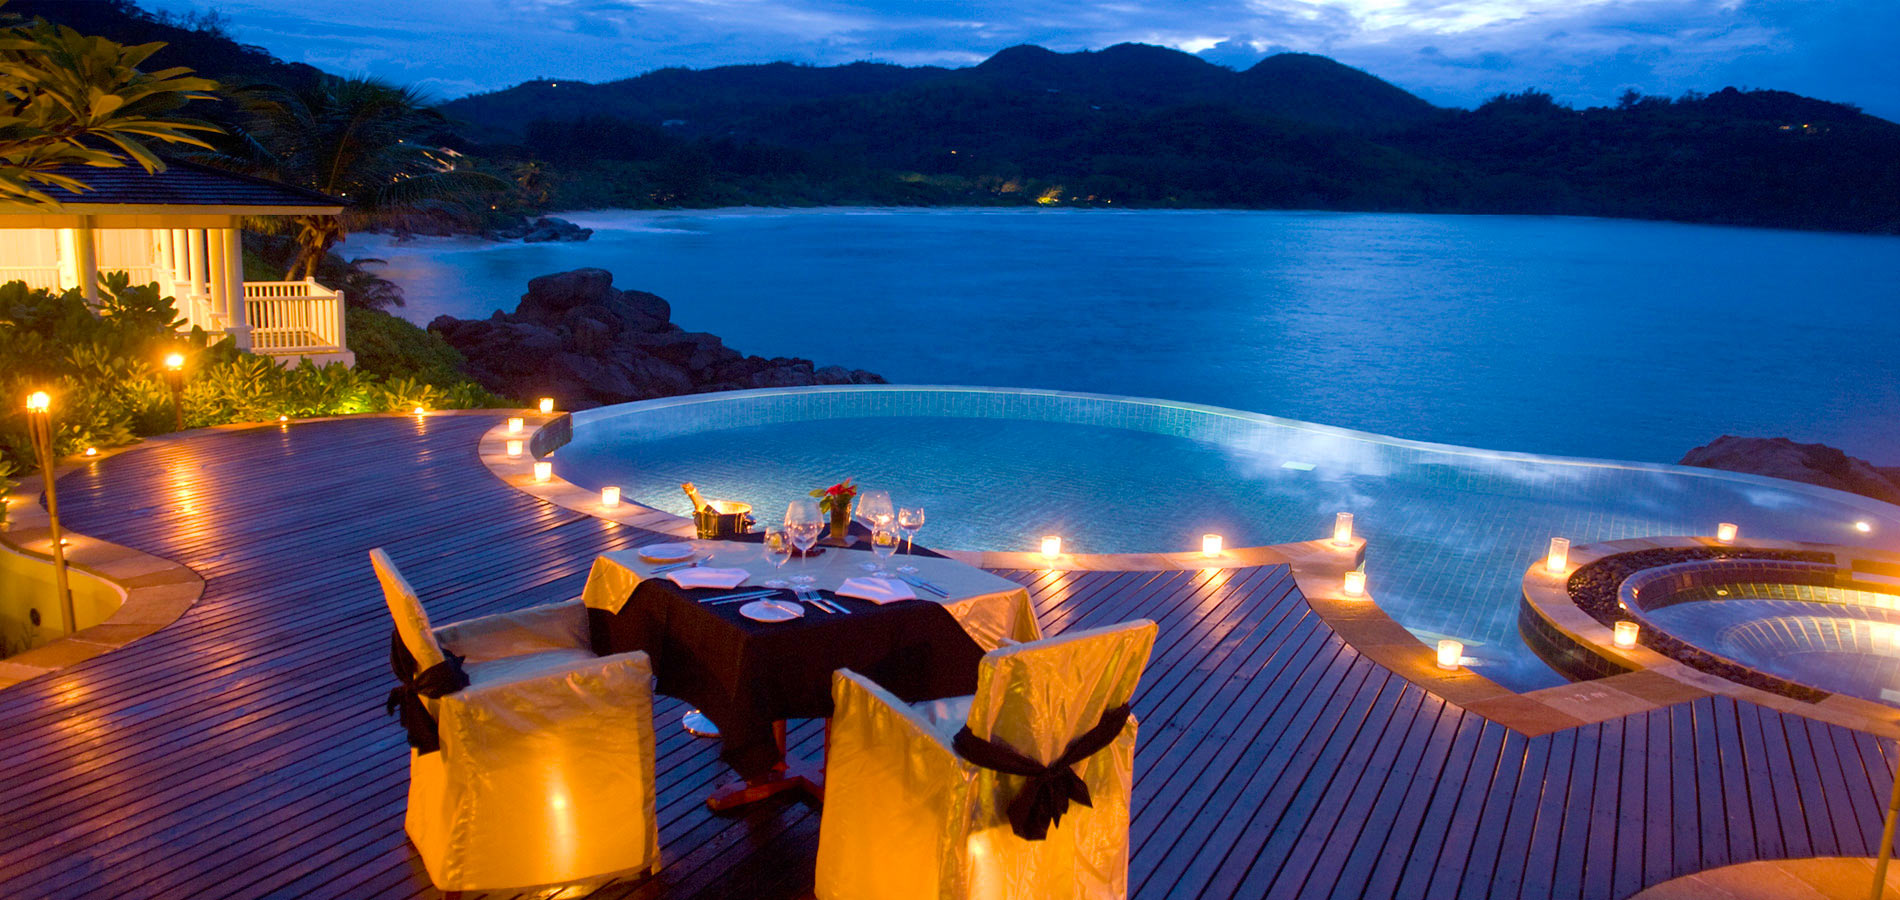 Sparkling voyages maia luxury resort and spa for World luxury hotels resorts